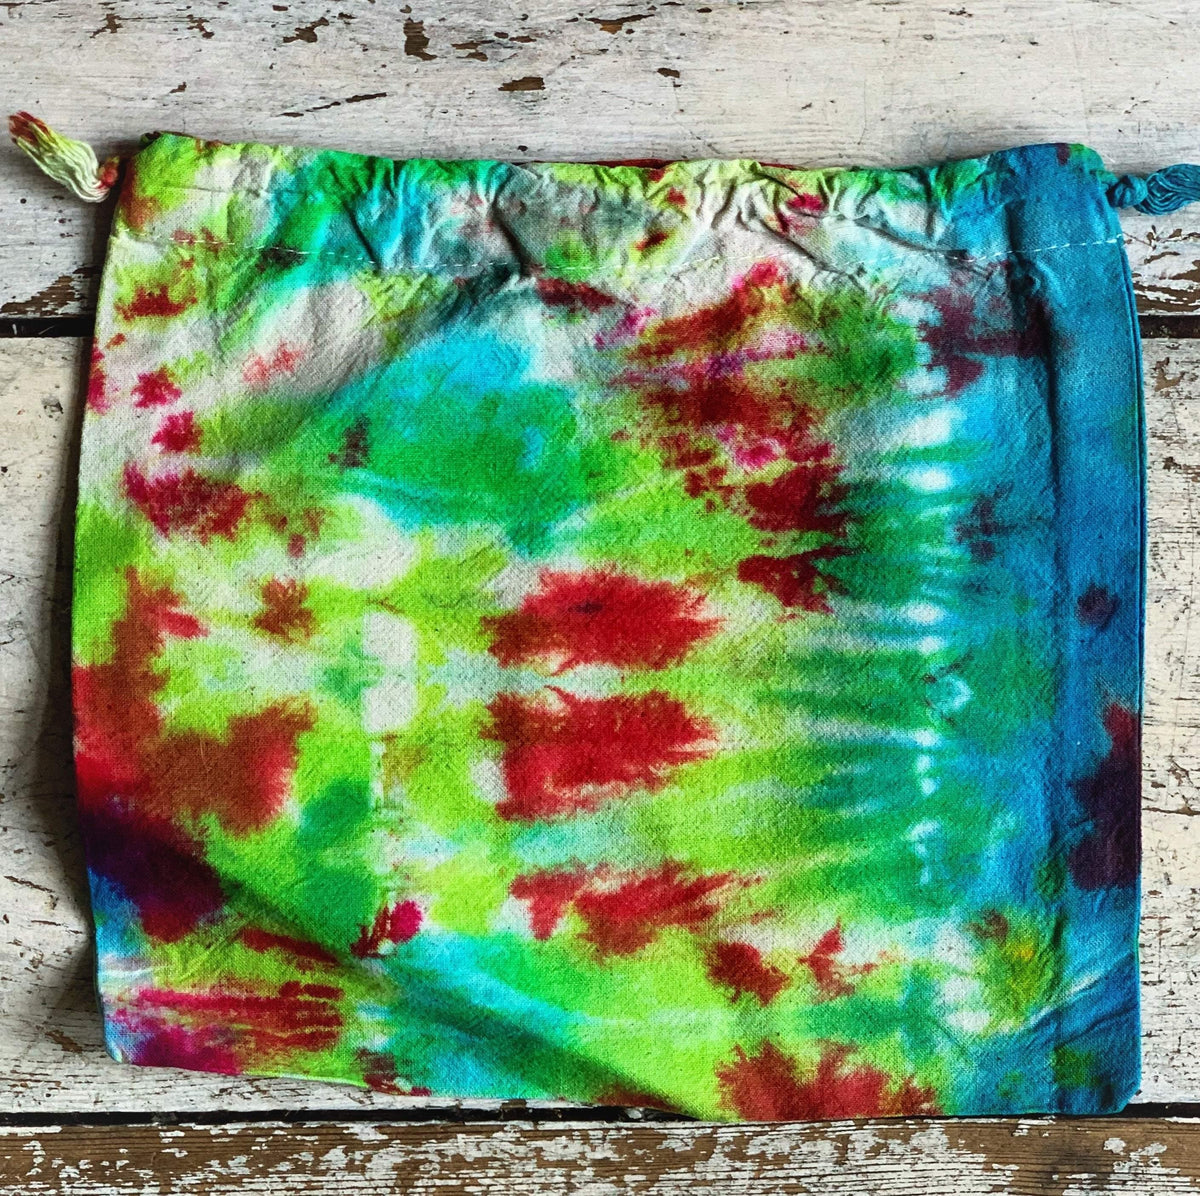 Ice Dyed Face Masks & Bags Jillybean Yarns Other Stuff